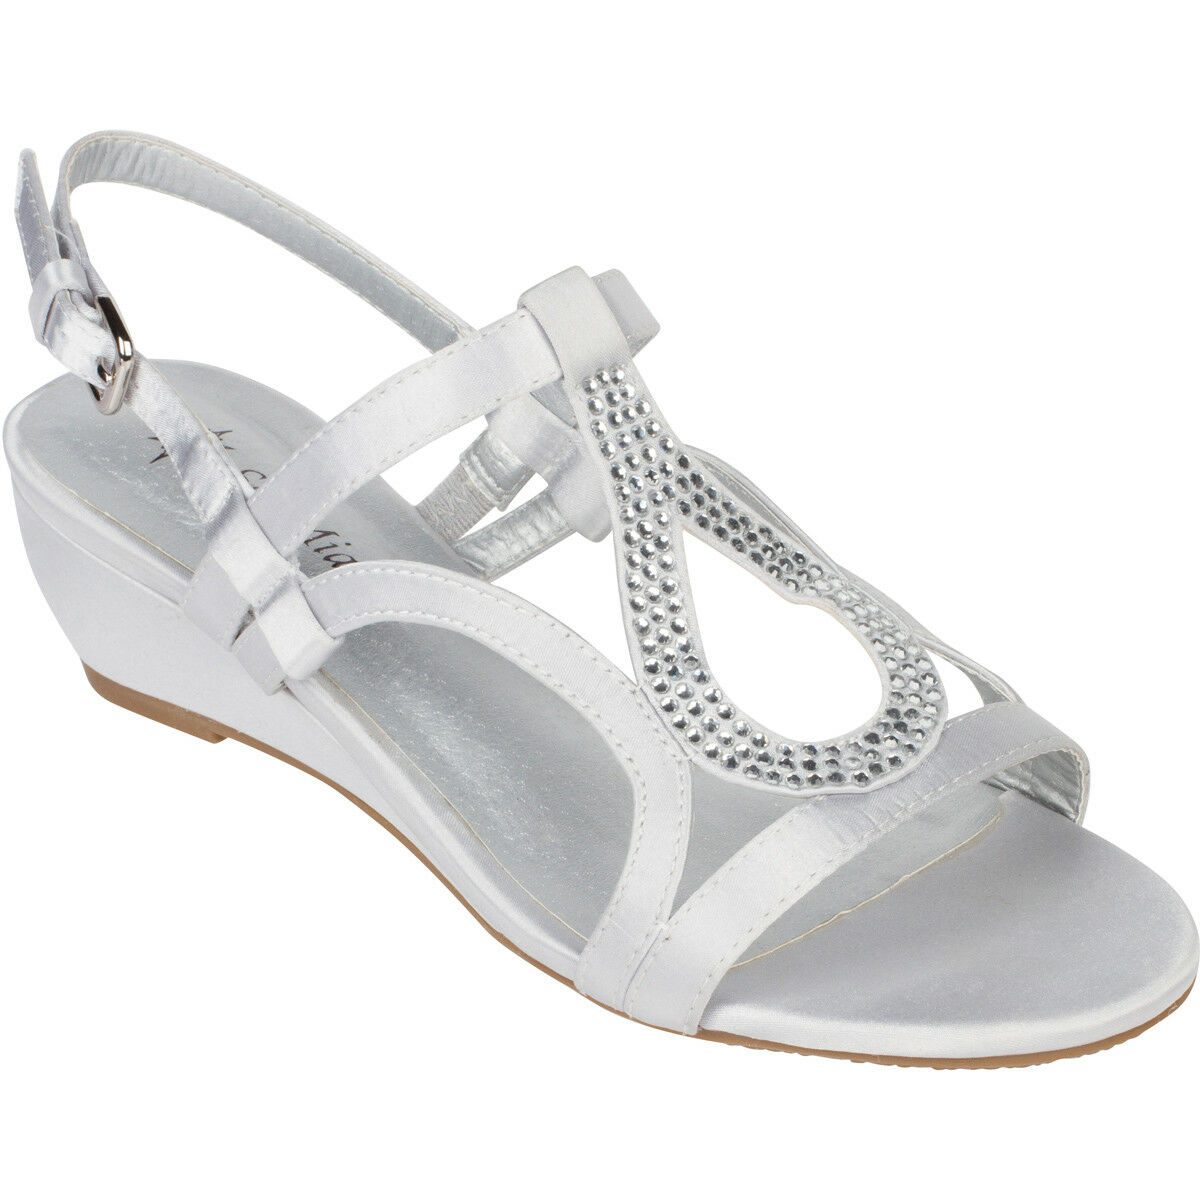 Silver Shoes Low Heel